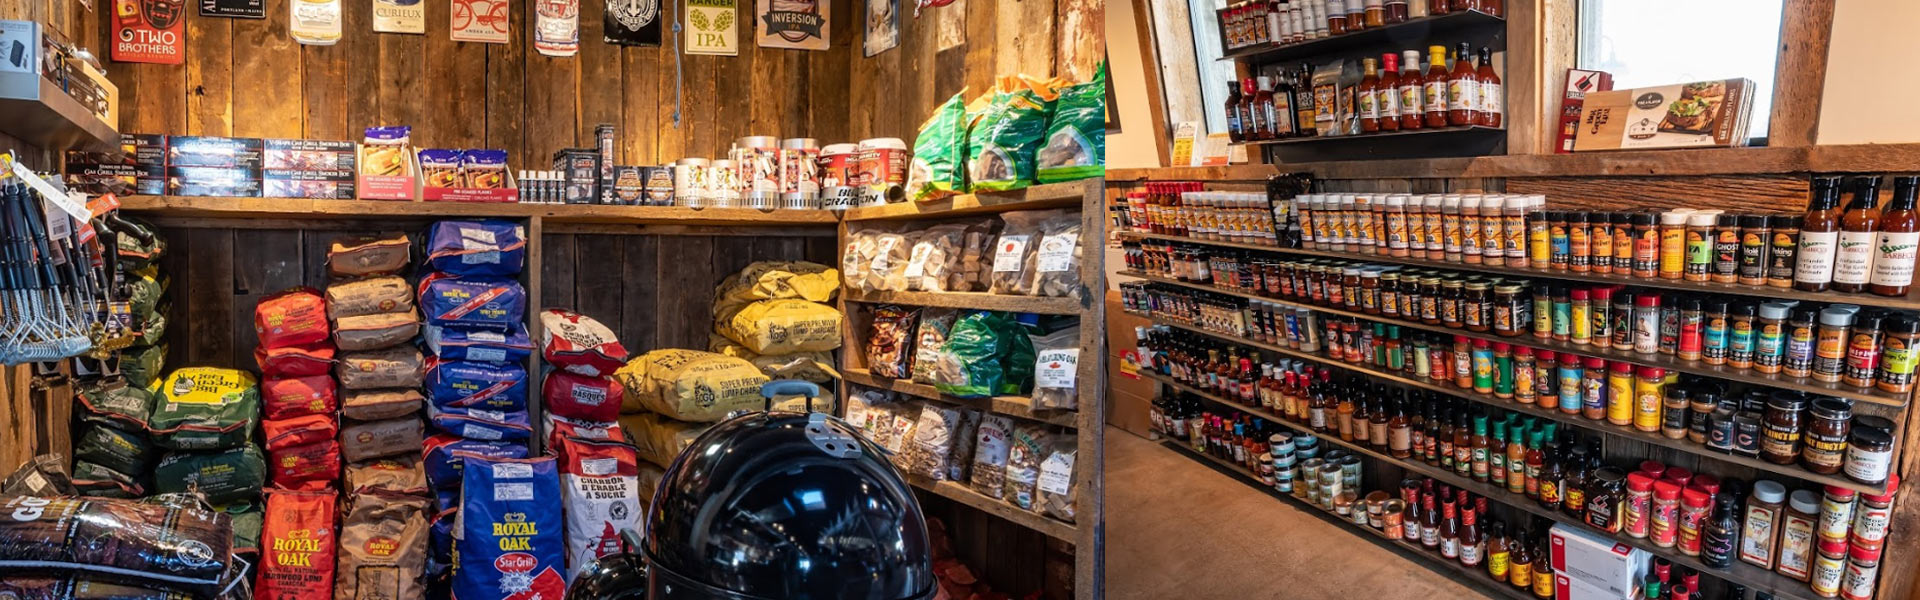 Home | Backyard BBQ Store